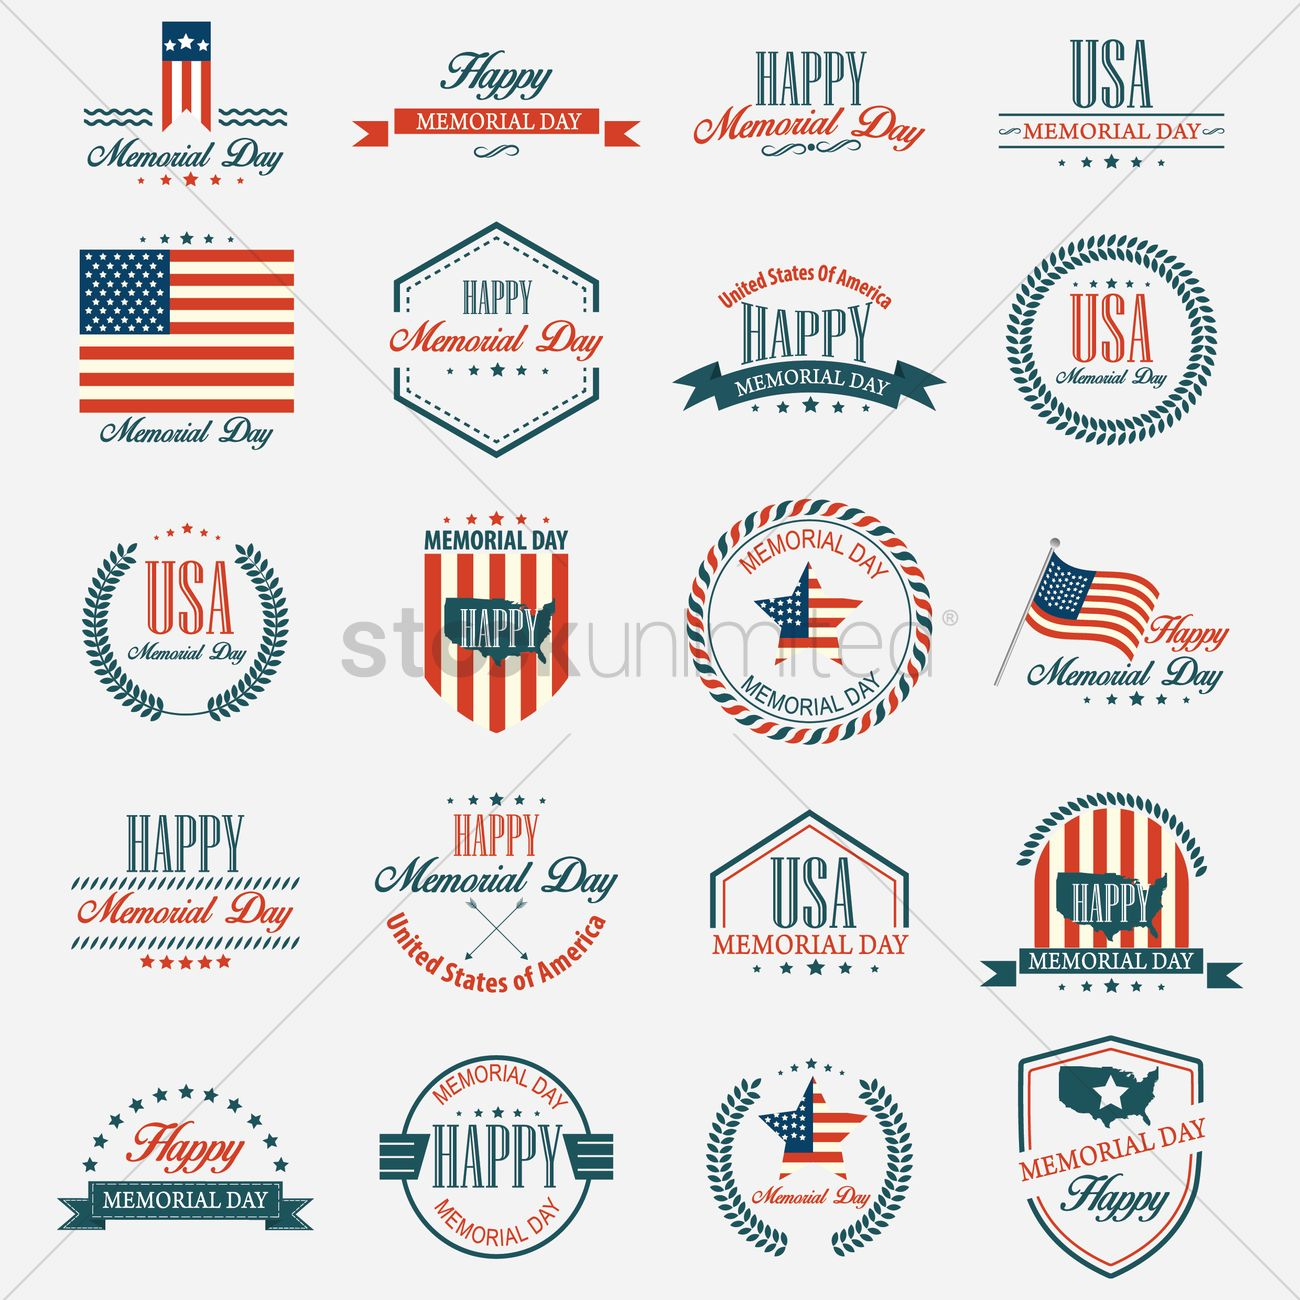 Memorial Day Badges and Labels in Vintage Style Vector Image